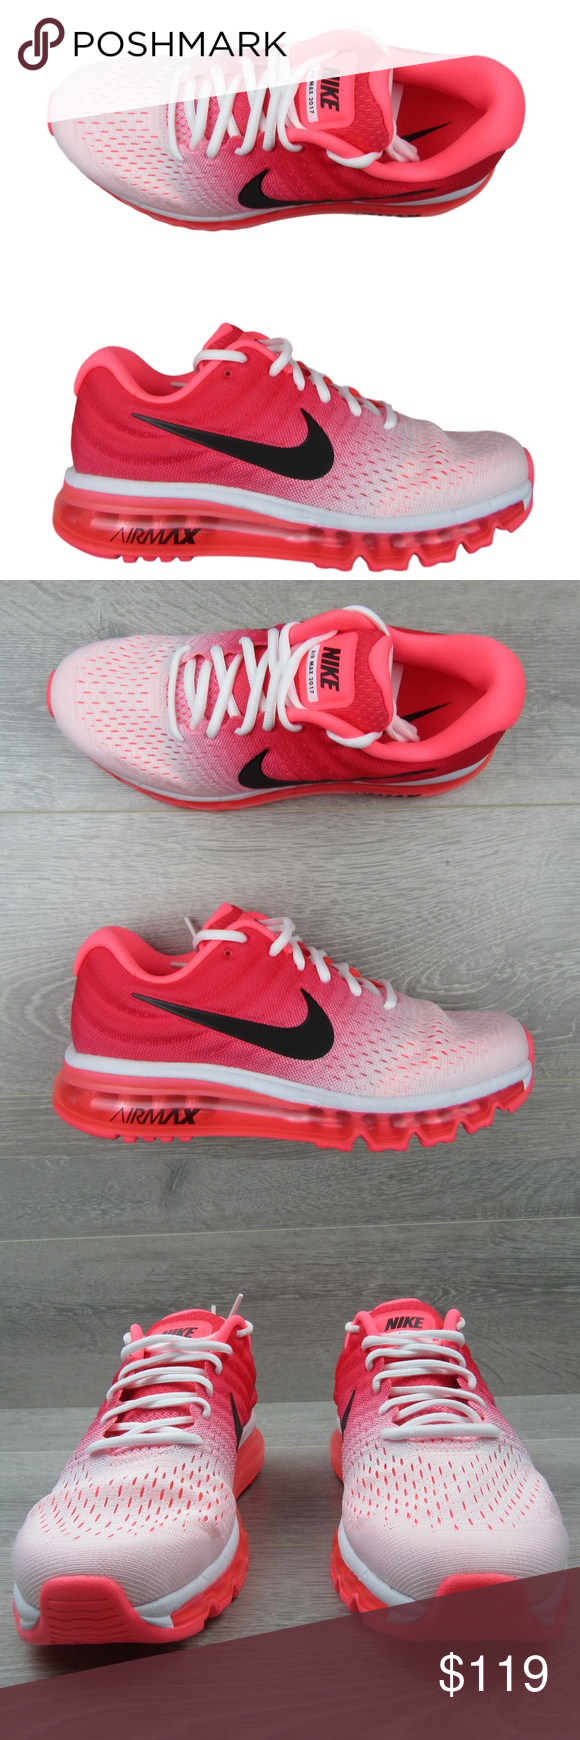 300bc9b463 Nike Air Max 2017 Running Shoes Size 9 Womens Pink Nike Air Max 2017  Running Shoes Size 9 Womens Pink Punch New Style - 849560 103 Women's Size 9  Brand NEW ...